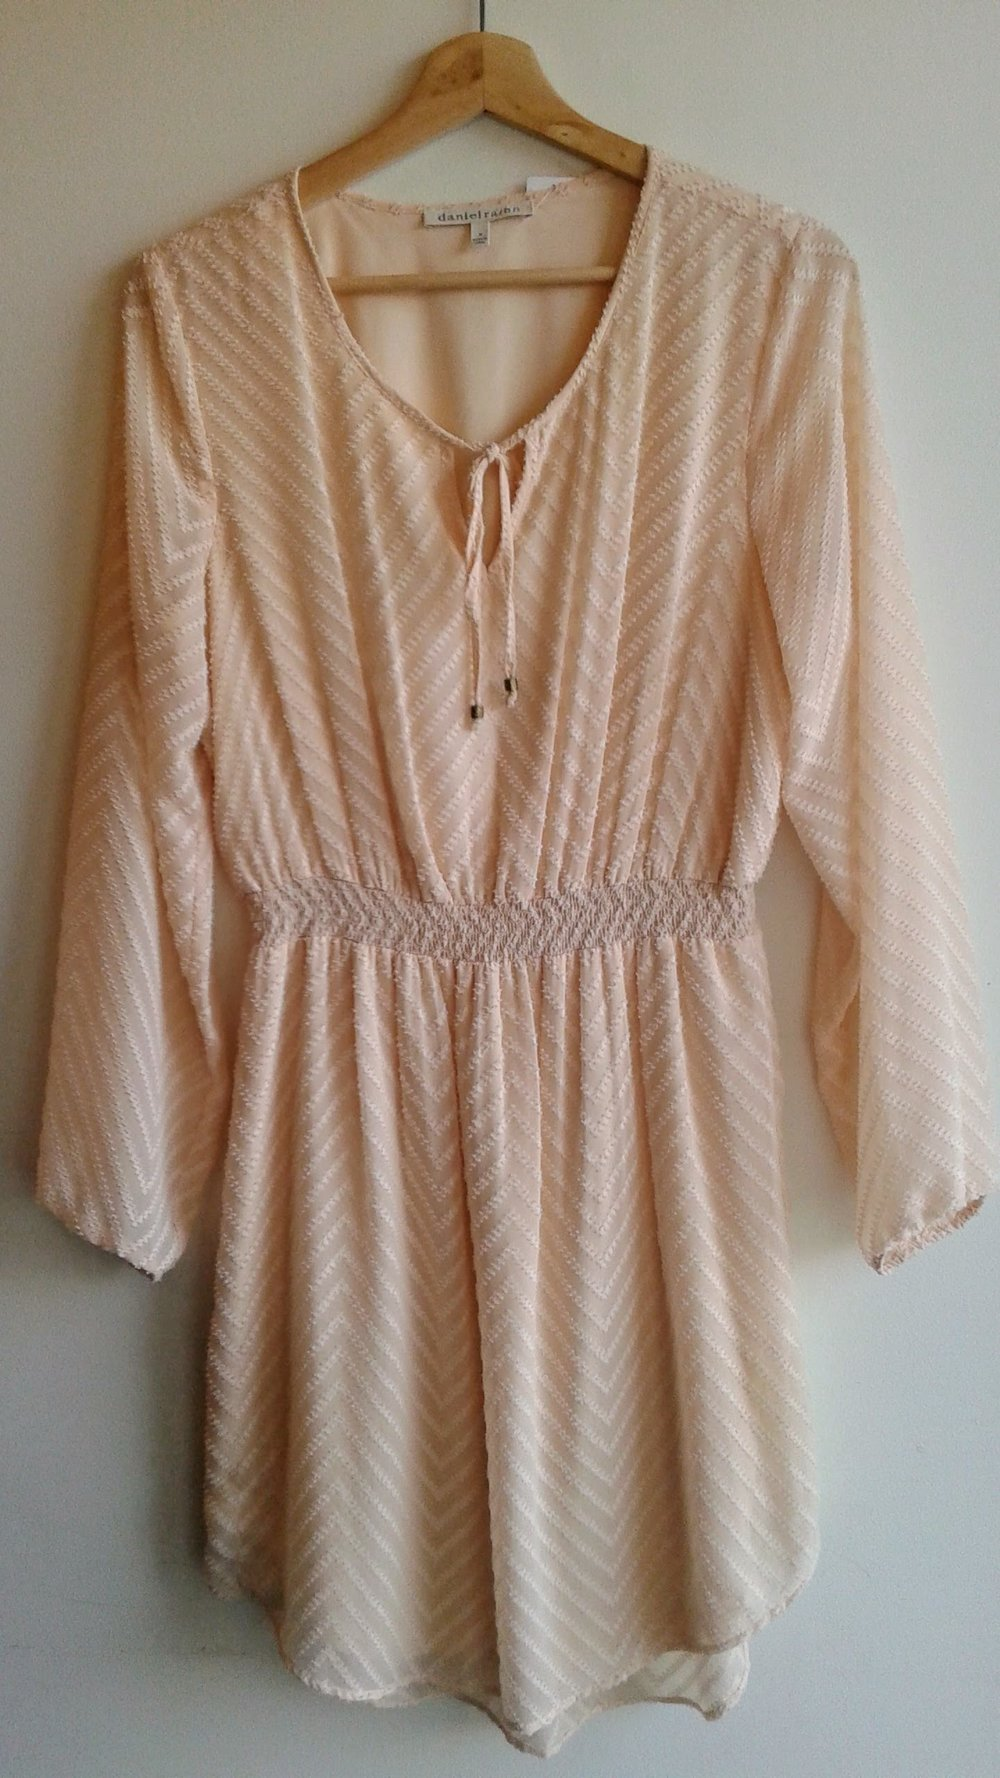 Daniel Rainn  dress; Size M, $30